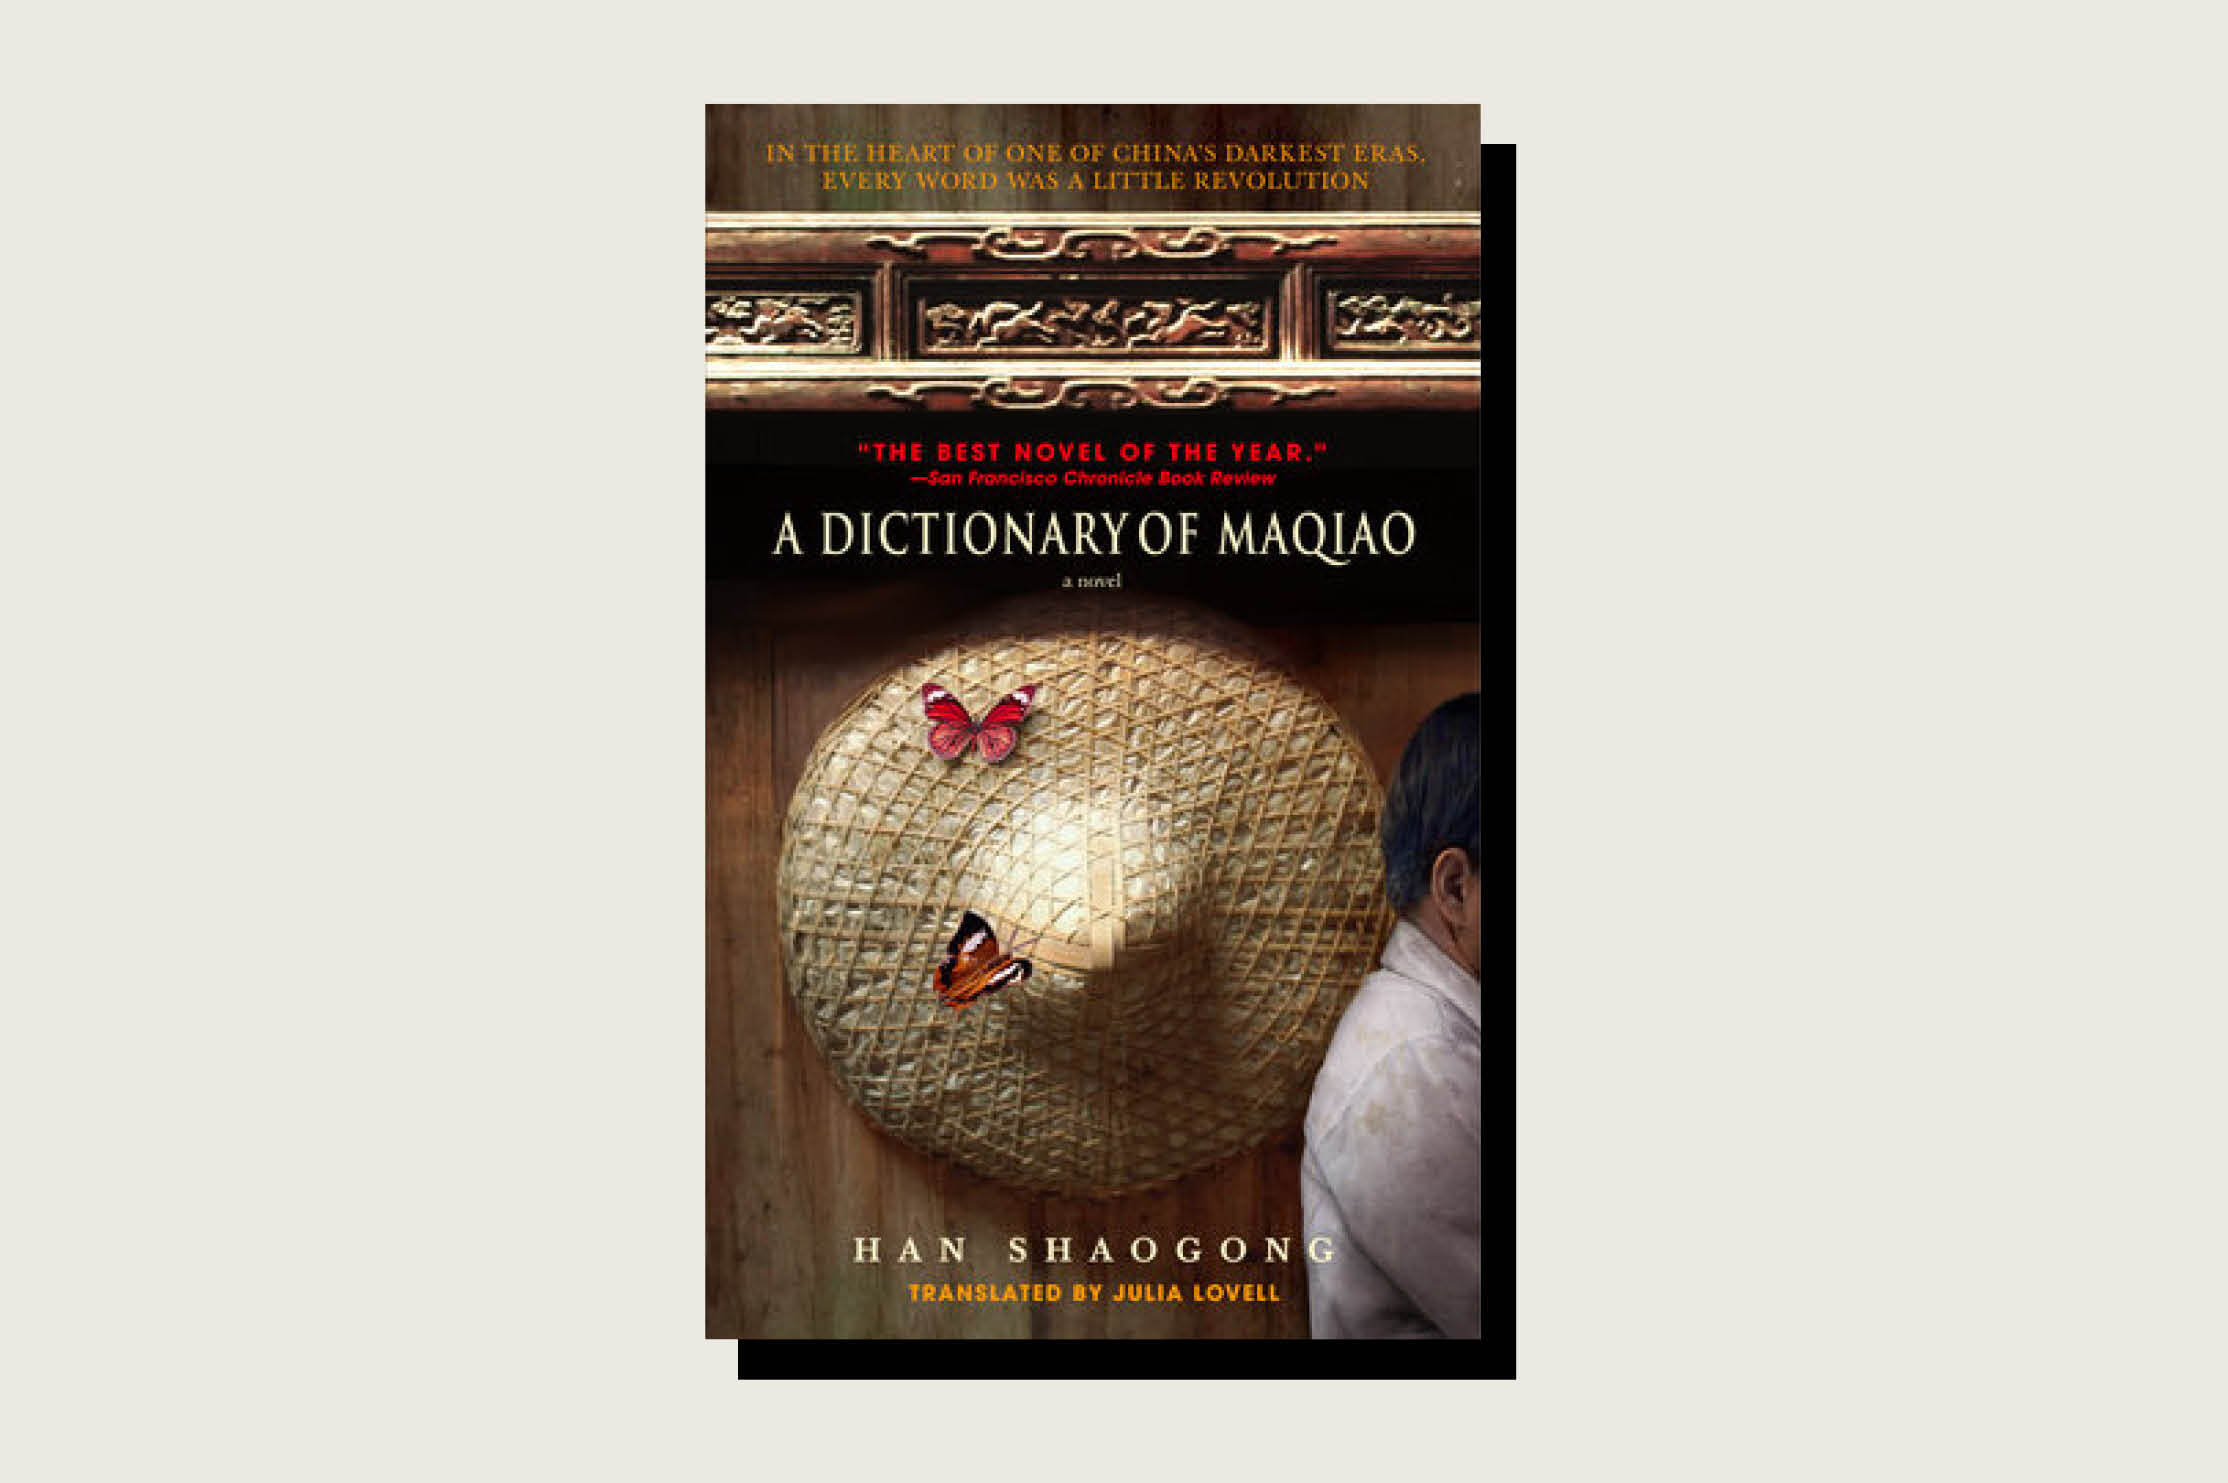 A Dictionary of Maquiao, Han Shaogong, trans. Julia Lovell, Penguin Random House, 2005.